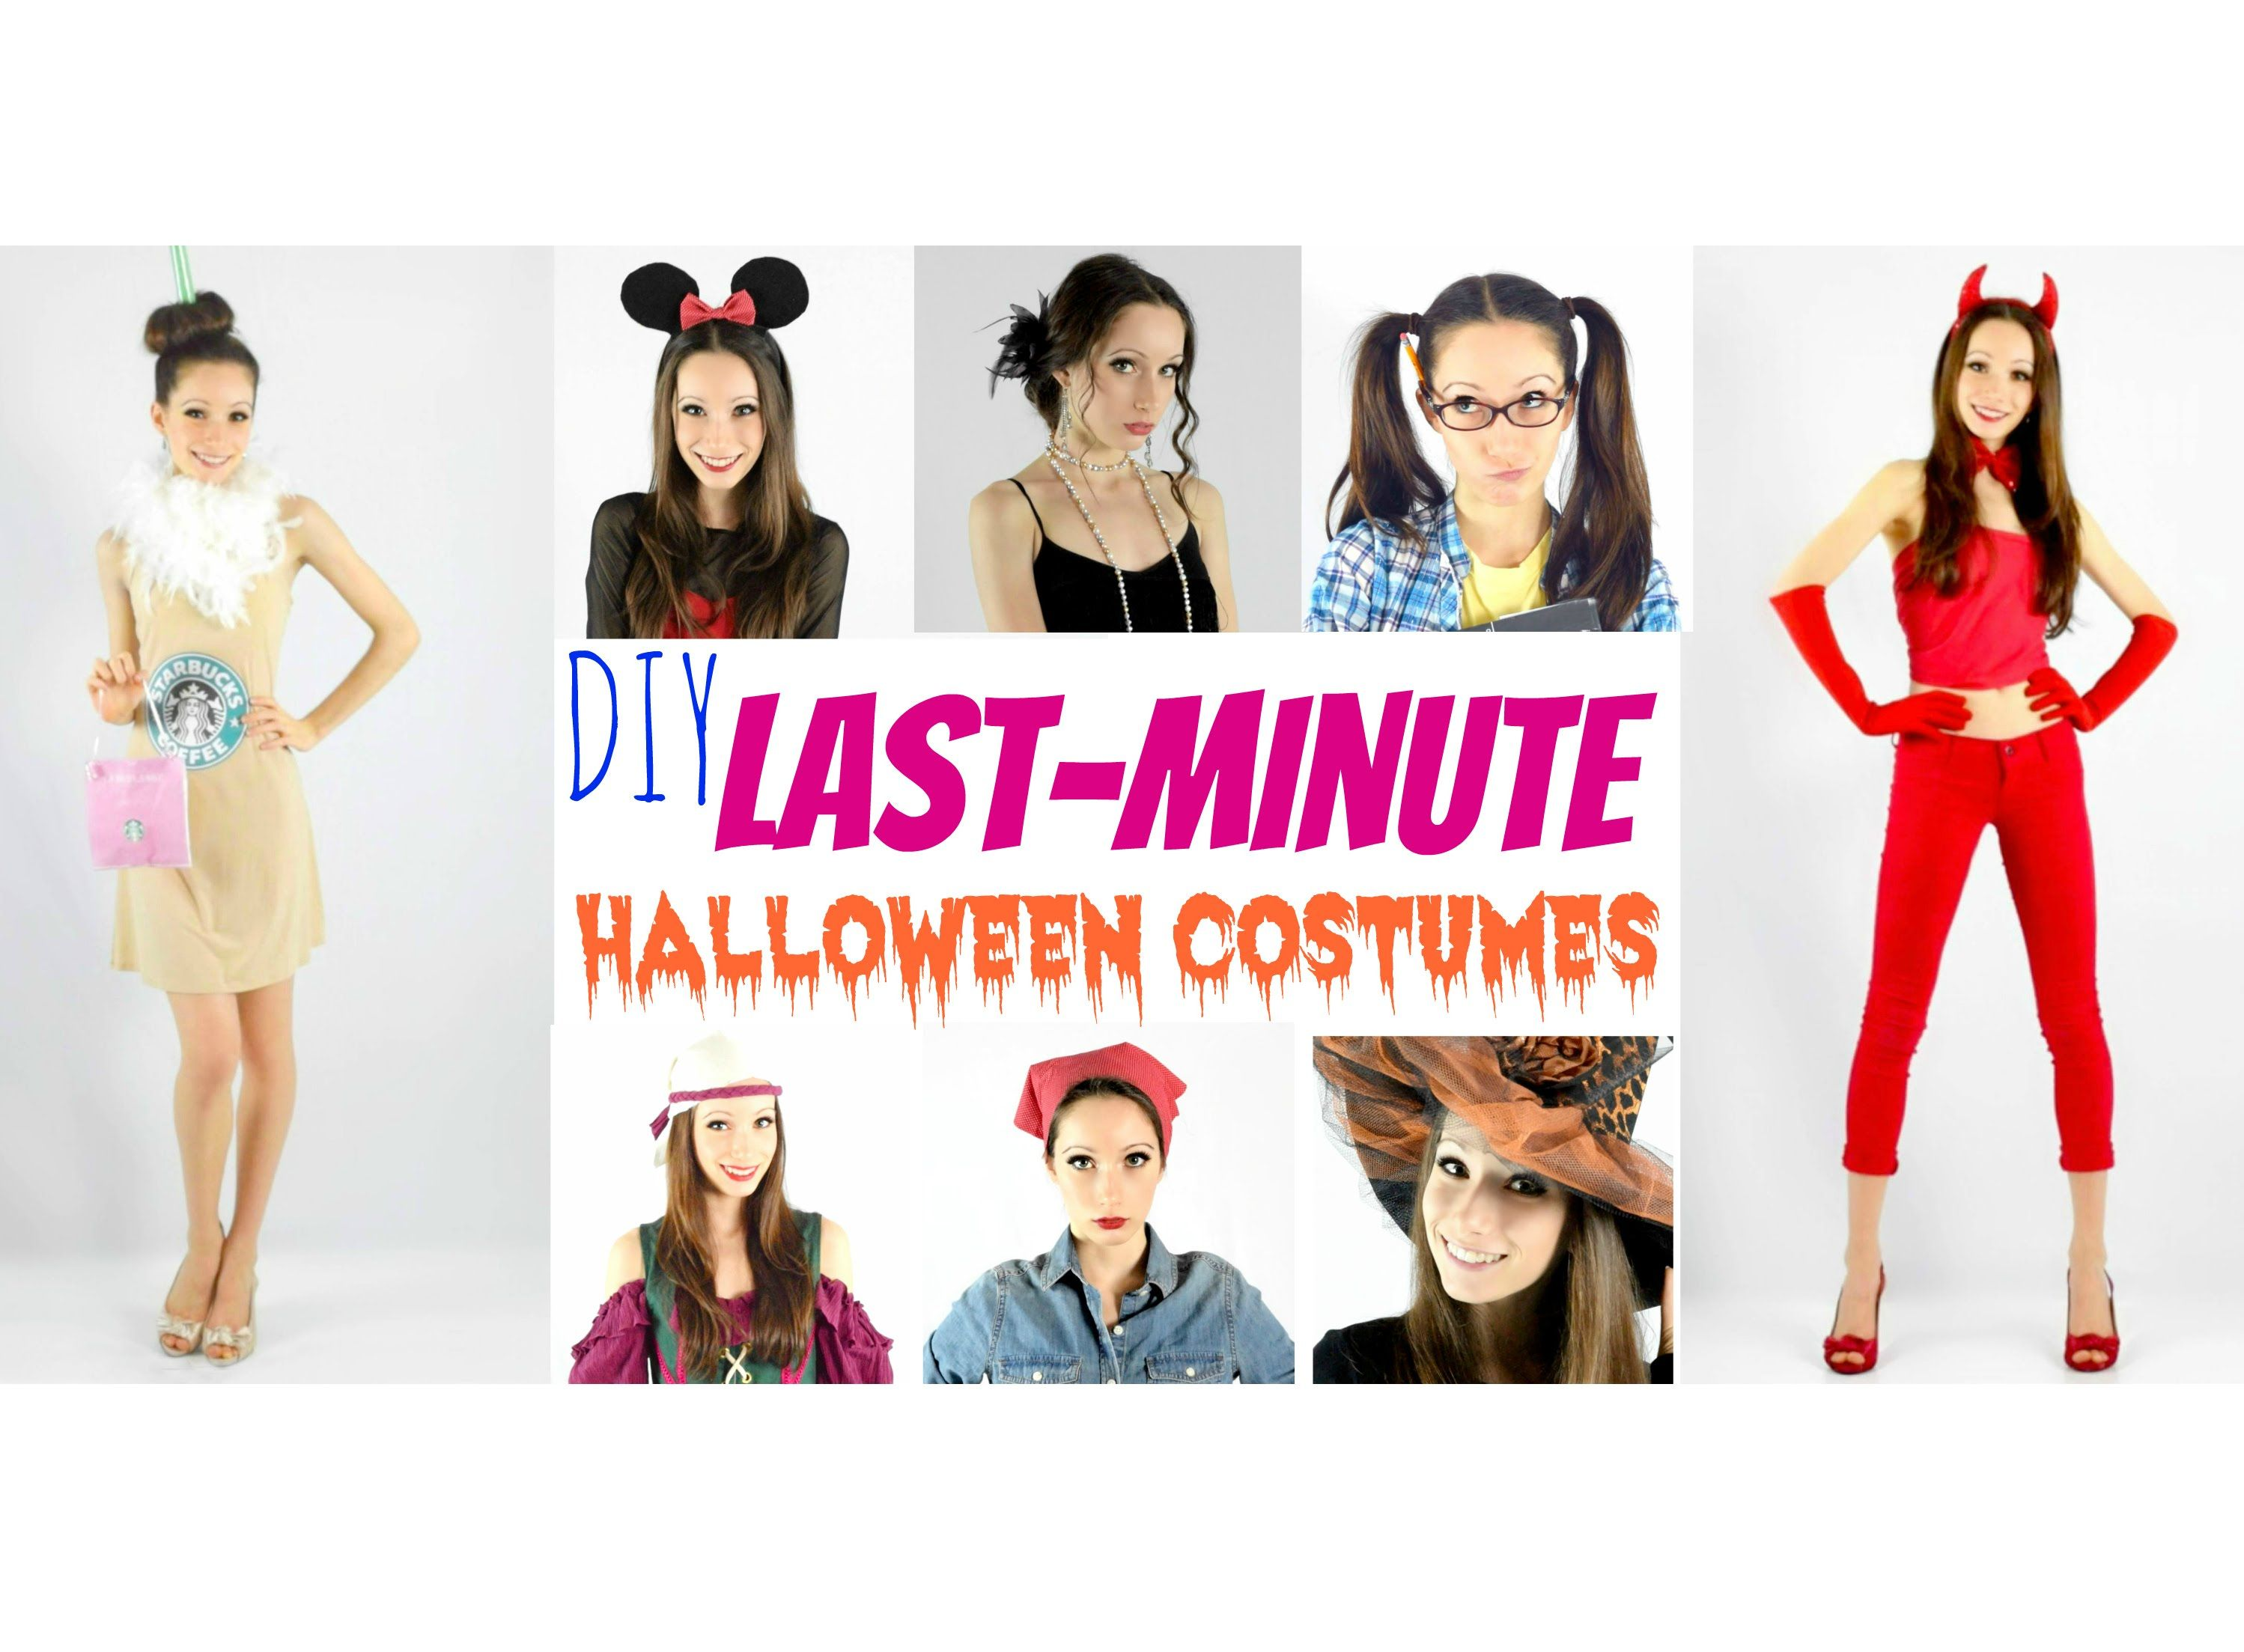 Halloween costumes, Diy halloween costumes and Costume ideas on Pinterest